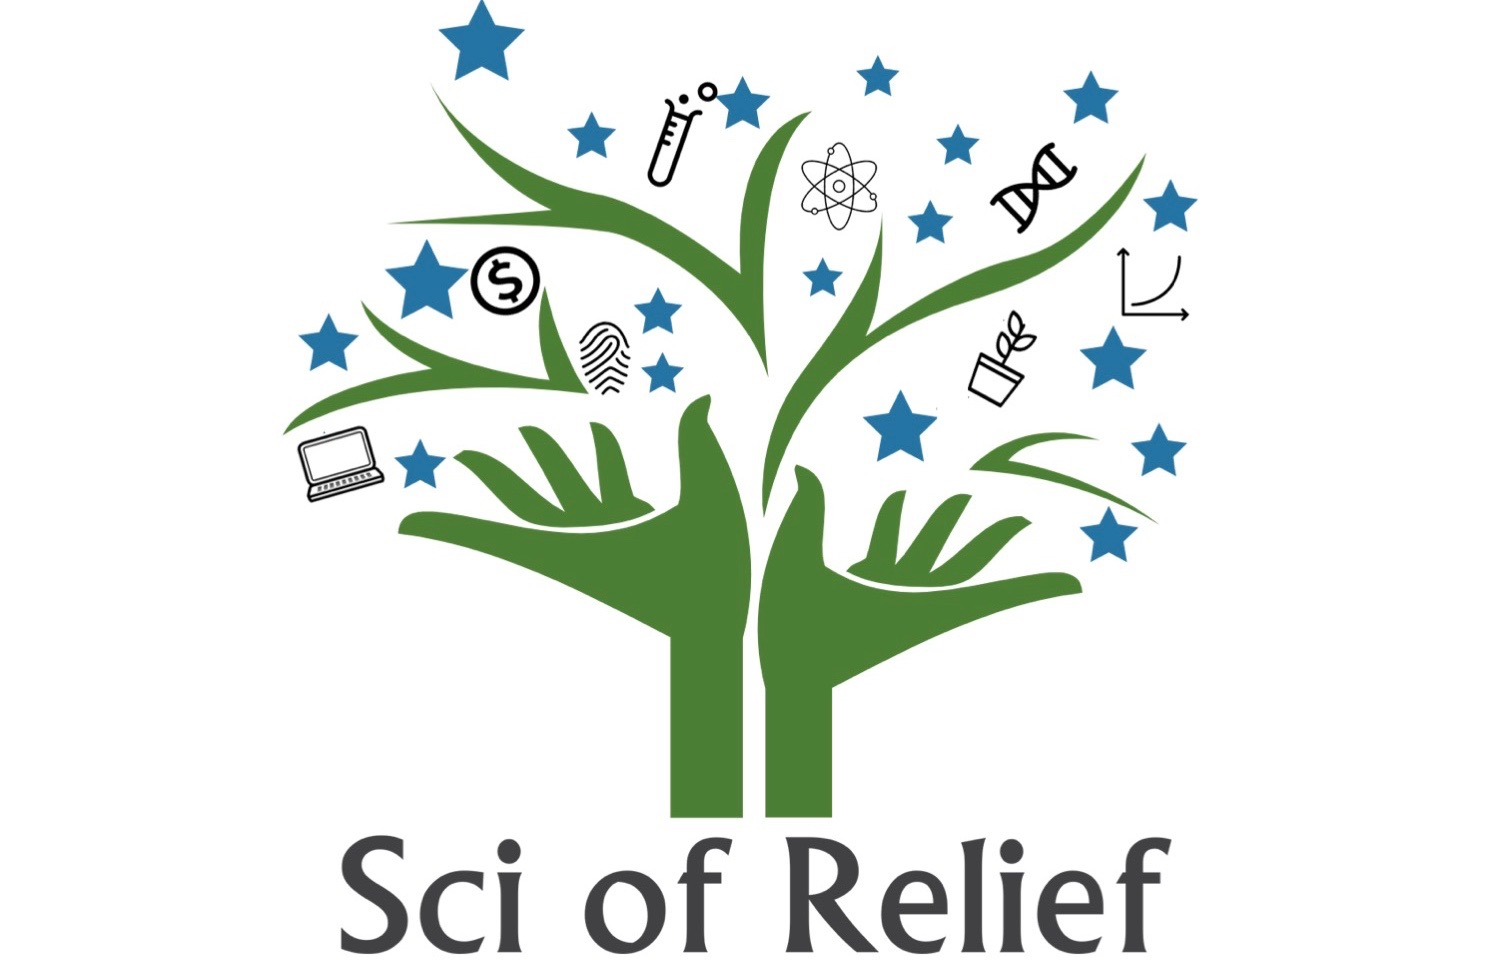 Sci of Relief